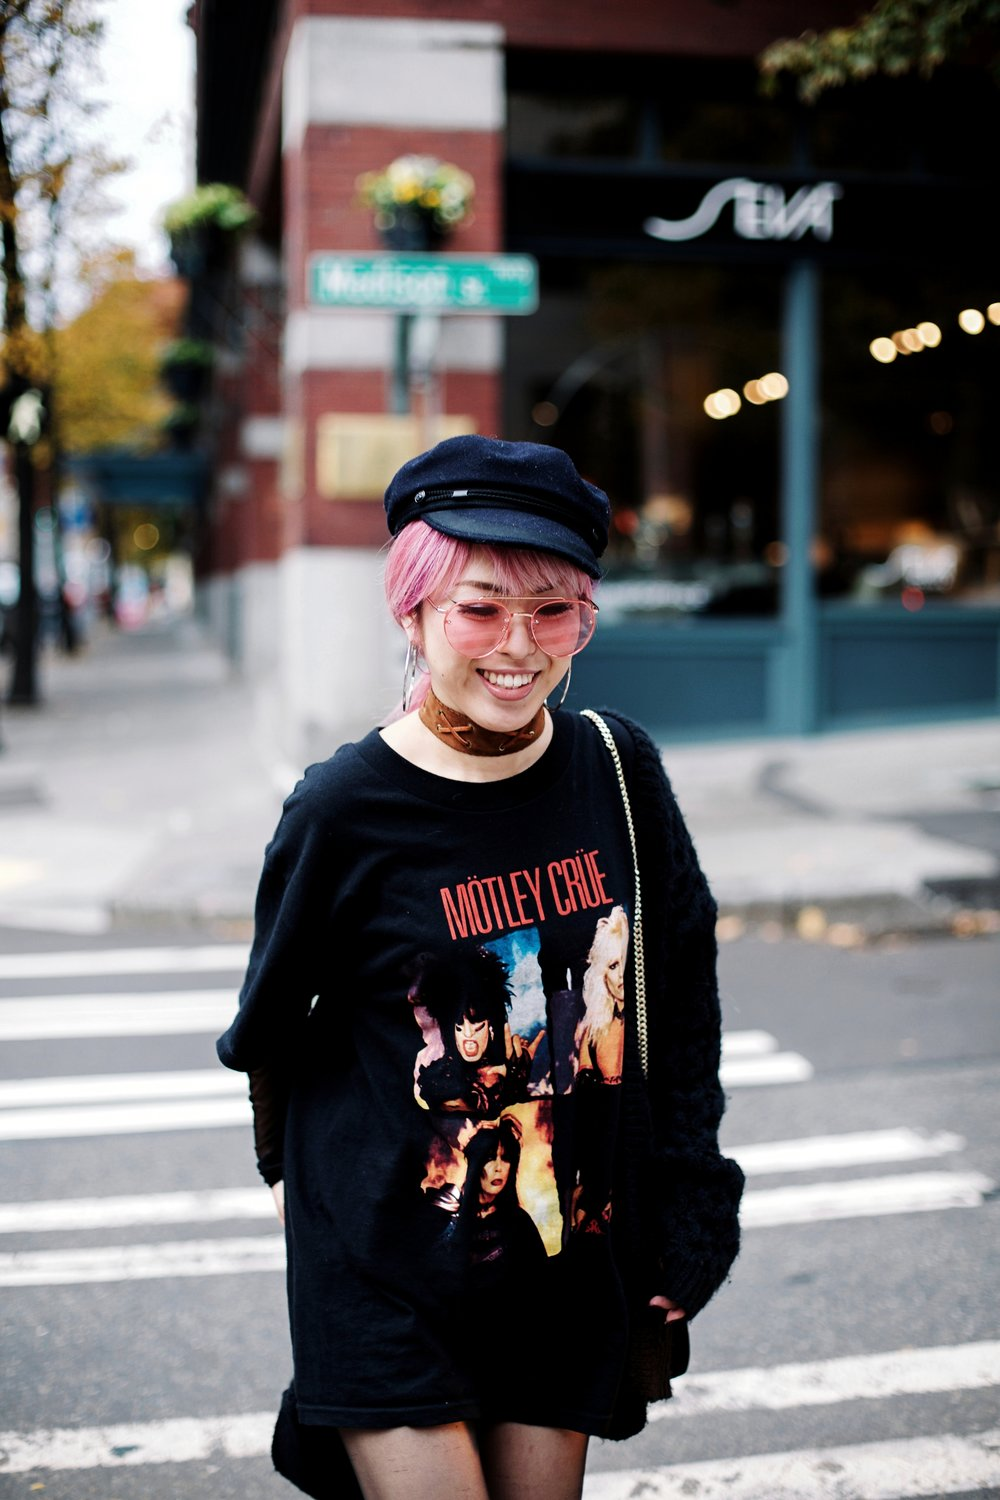 No Weekends Pink Tinted Sunglasses-Isabel Marant Hat-Forever 21 hoop earrings-Free People Double Crossed Suede Choker-Vintage Rock T-shirt-Zara sheer top & EMBROIDERED CLUTCH-H&M Chunky Cardigan-Aika's love Closet-Seattle Fashion Blogger-Japanese-Pink hair-Colored Hair